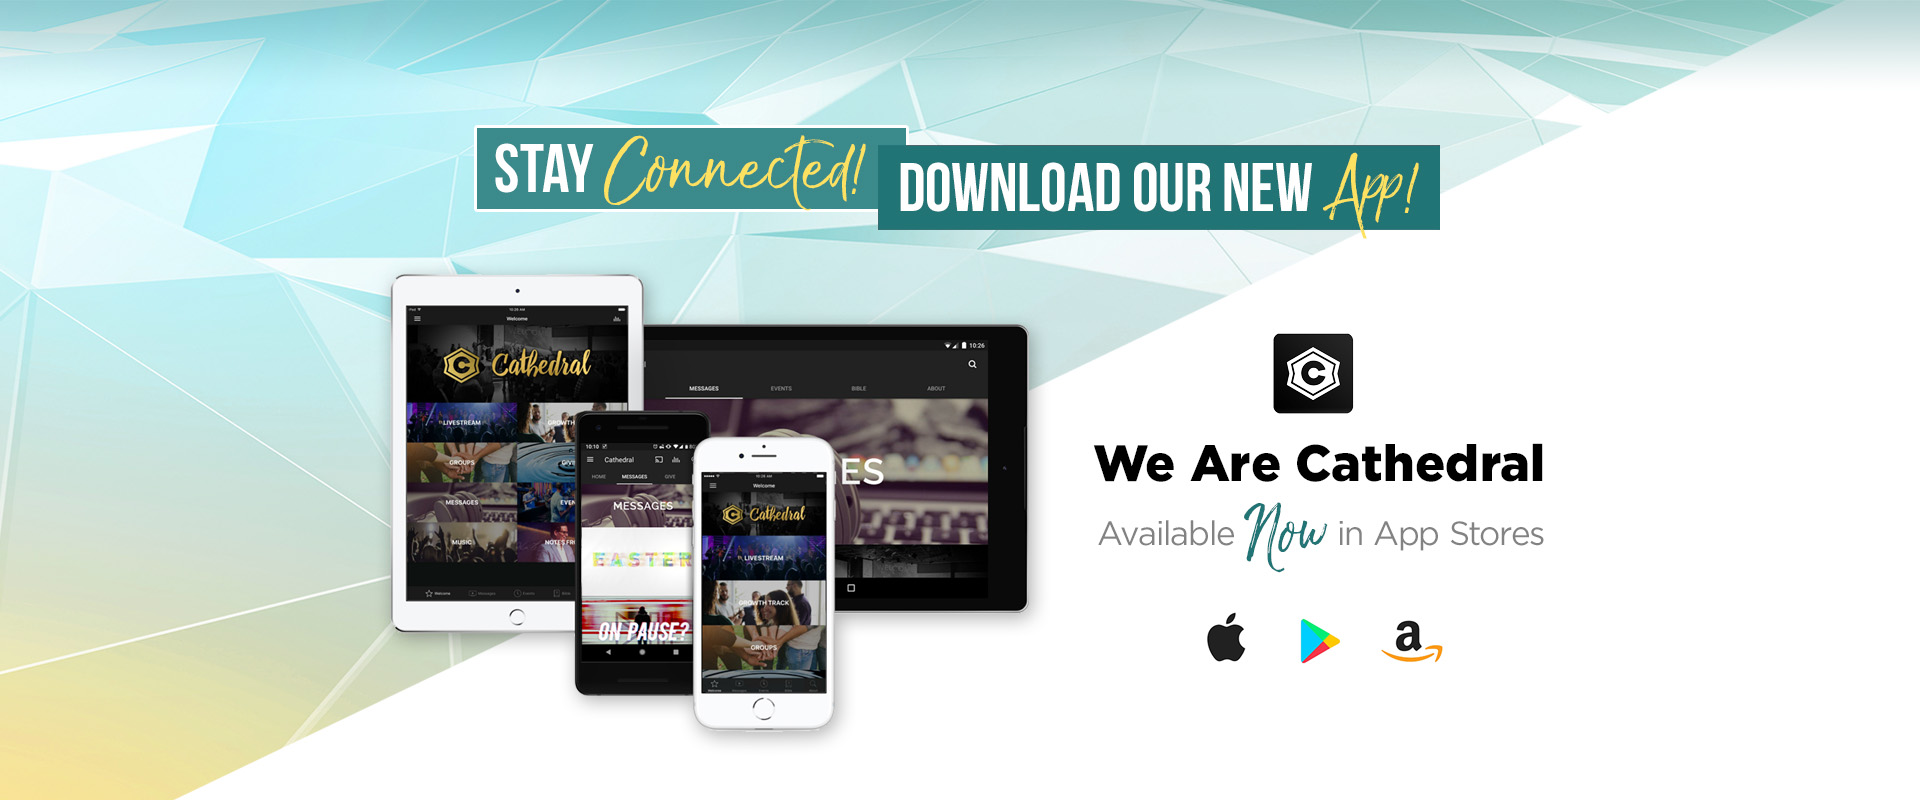 We Are Cathedral App - download